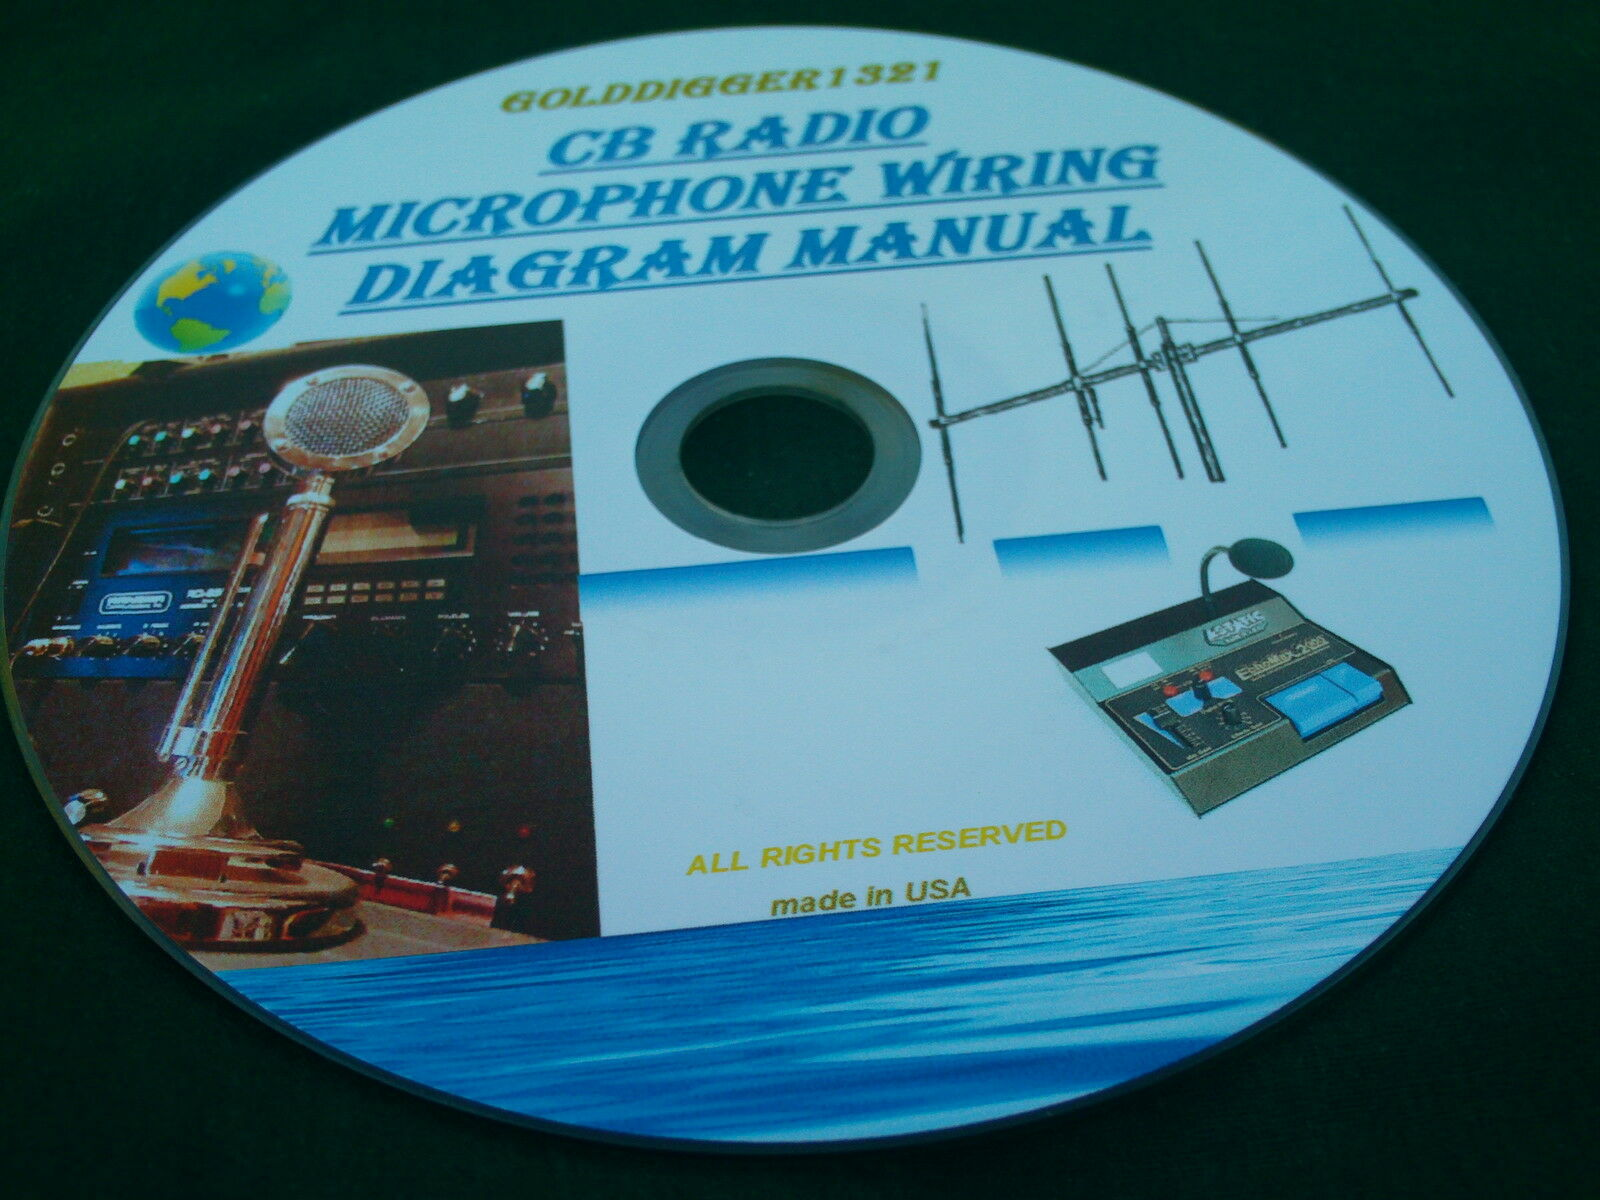 Cb Radio Microphone Wiring Diagram Manual On Cd 995 Picclick Uniden Mic 1 Of See More